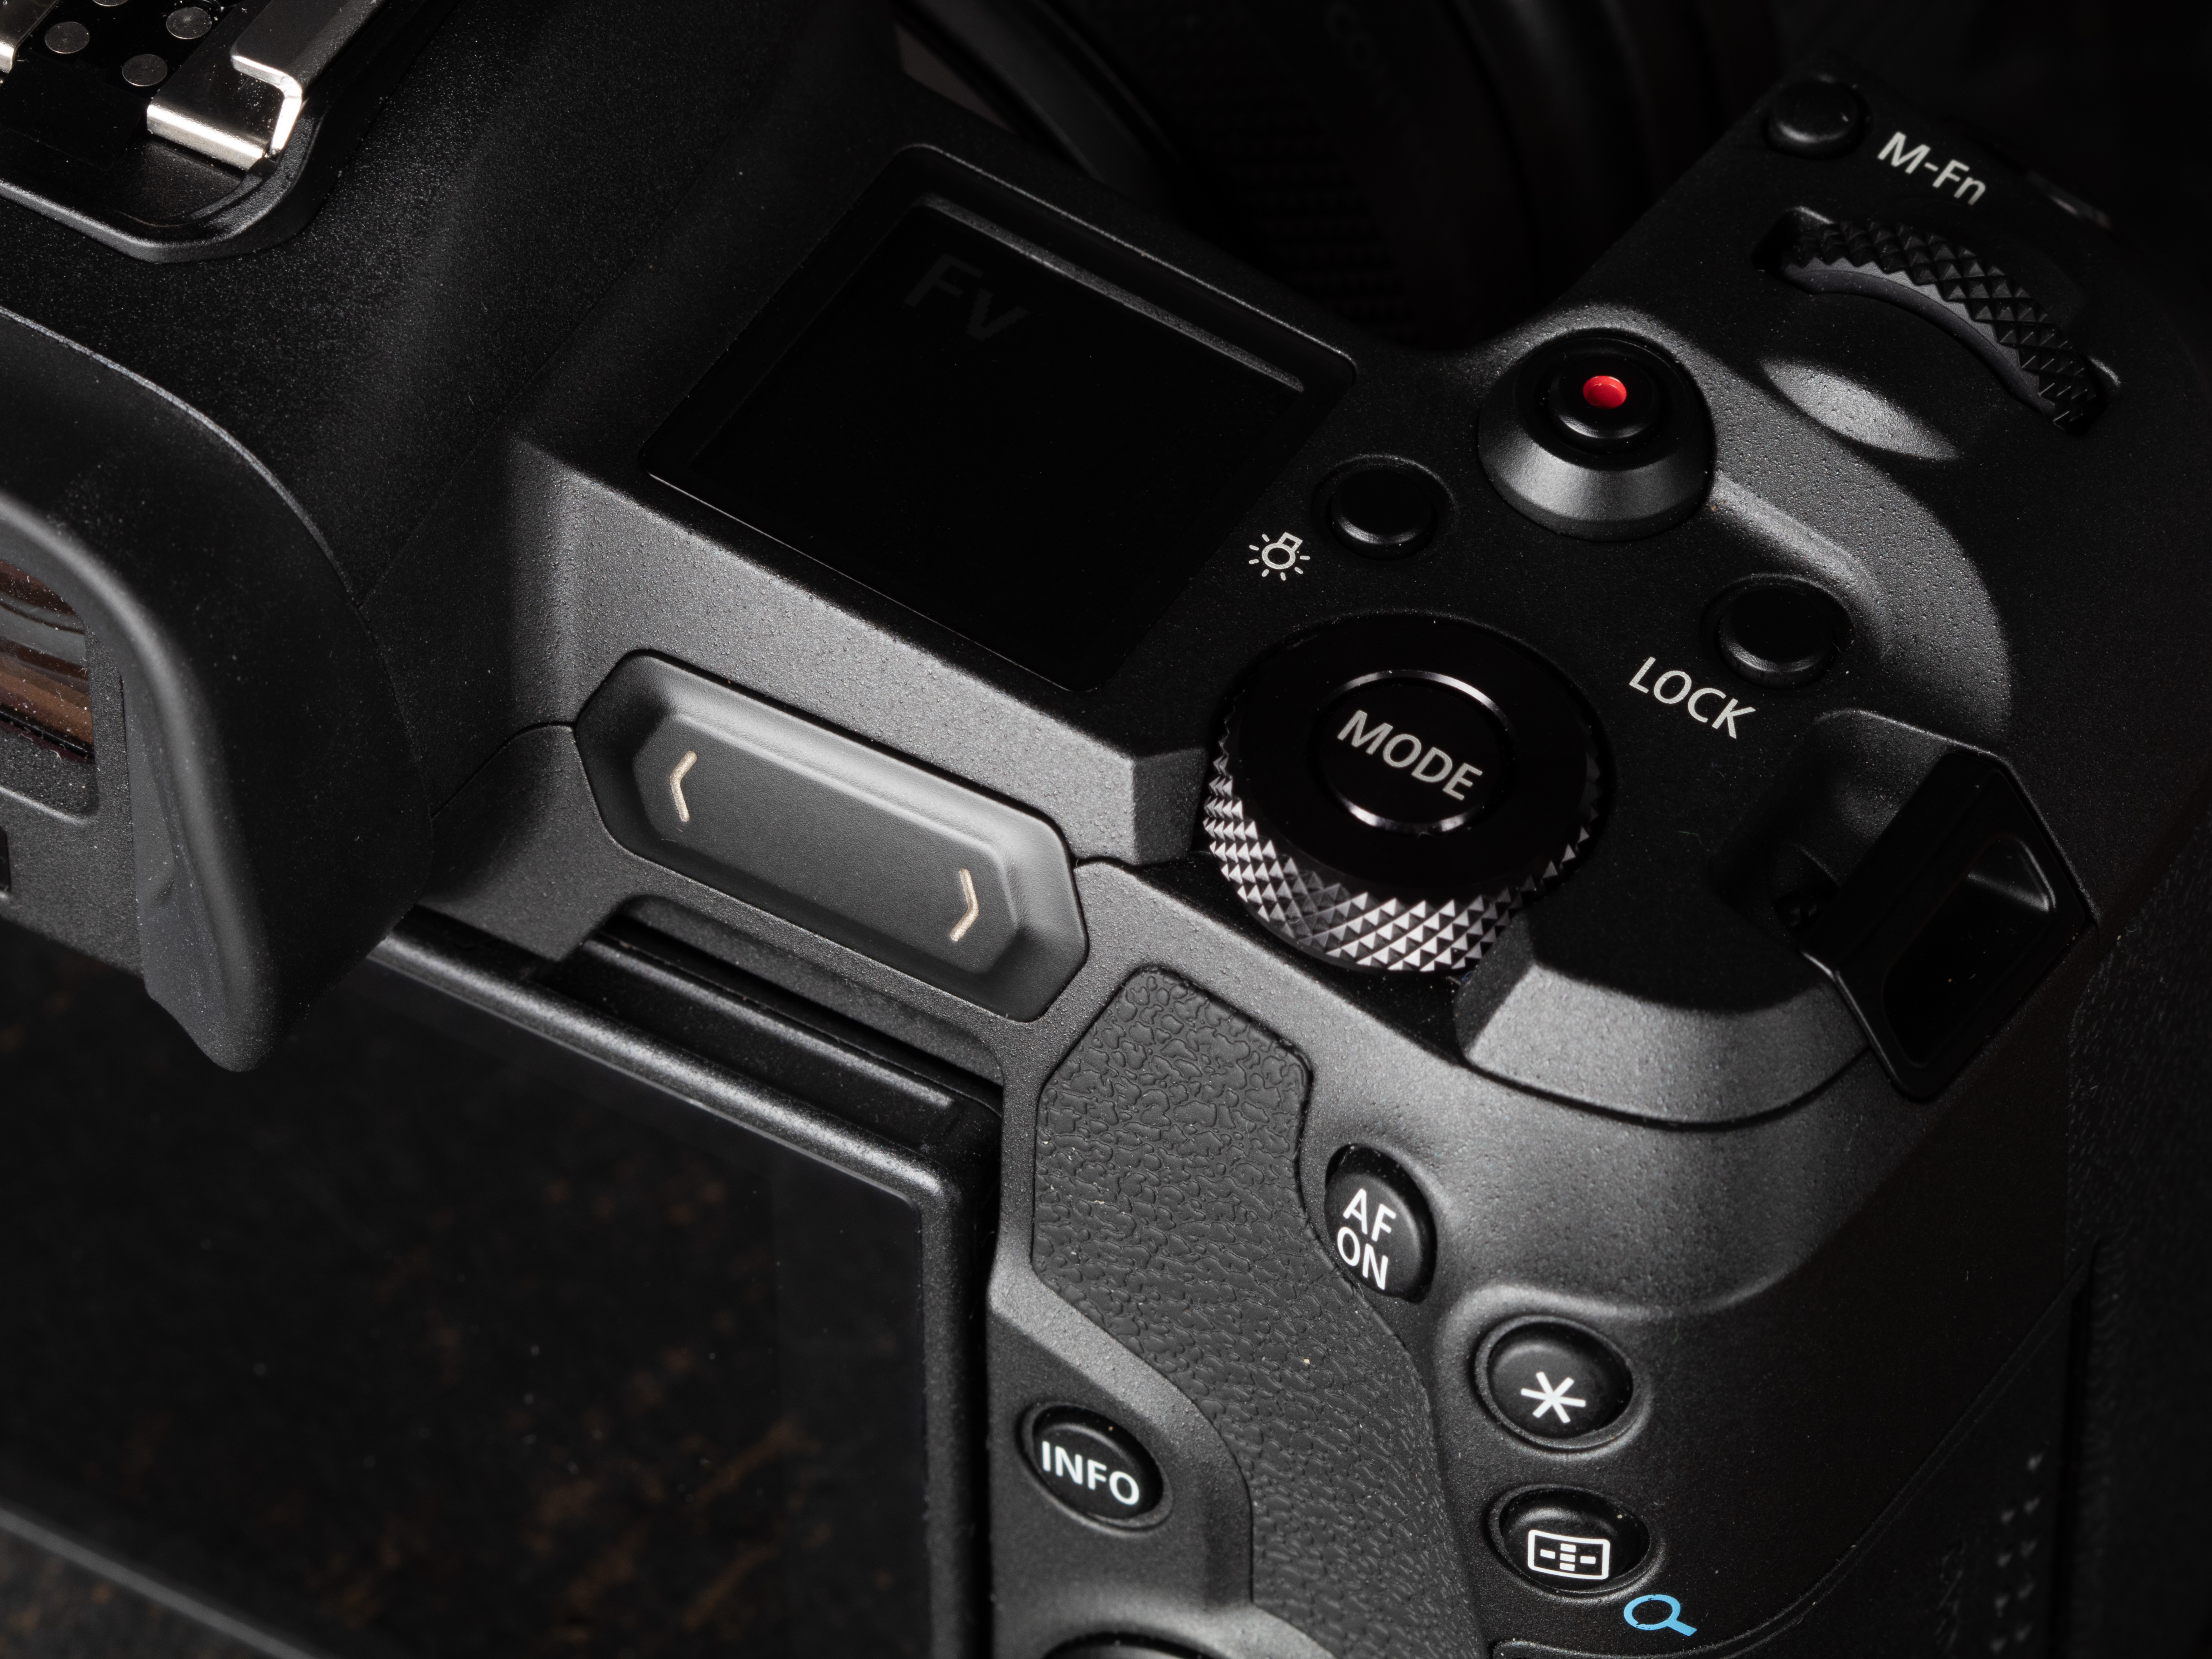 The M-Fn Bar along the back of the camera can be customized to act as two  buttons and a  swipeable  control pad. None of us have been very impressed a0e9d81559375